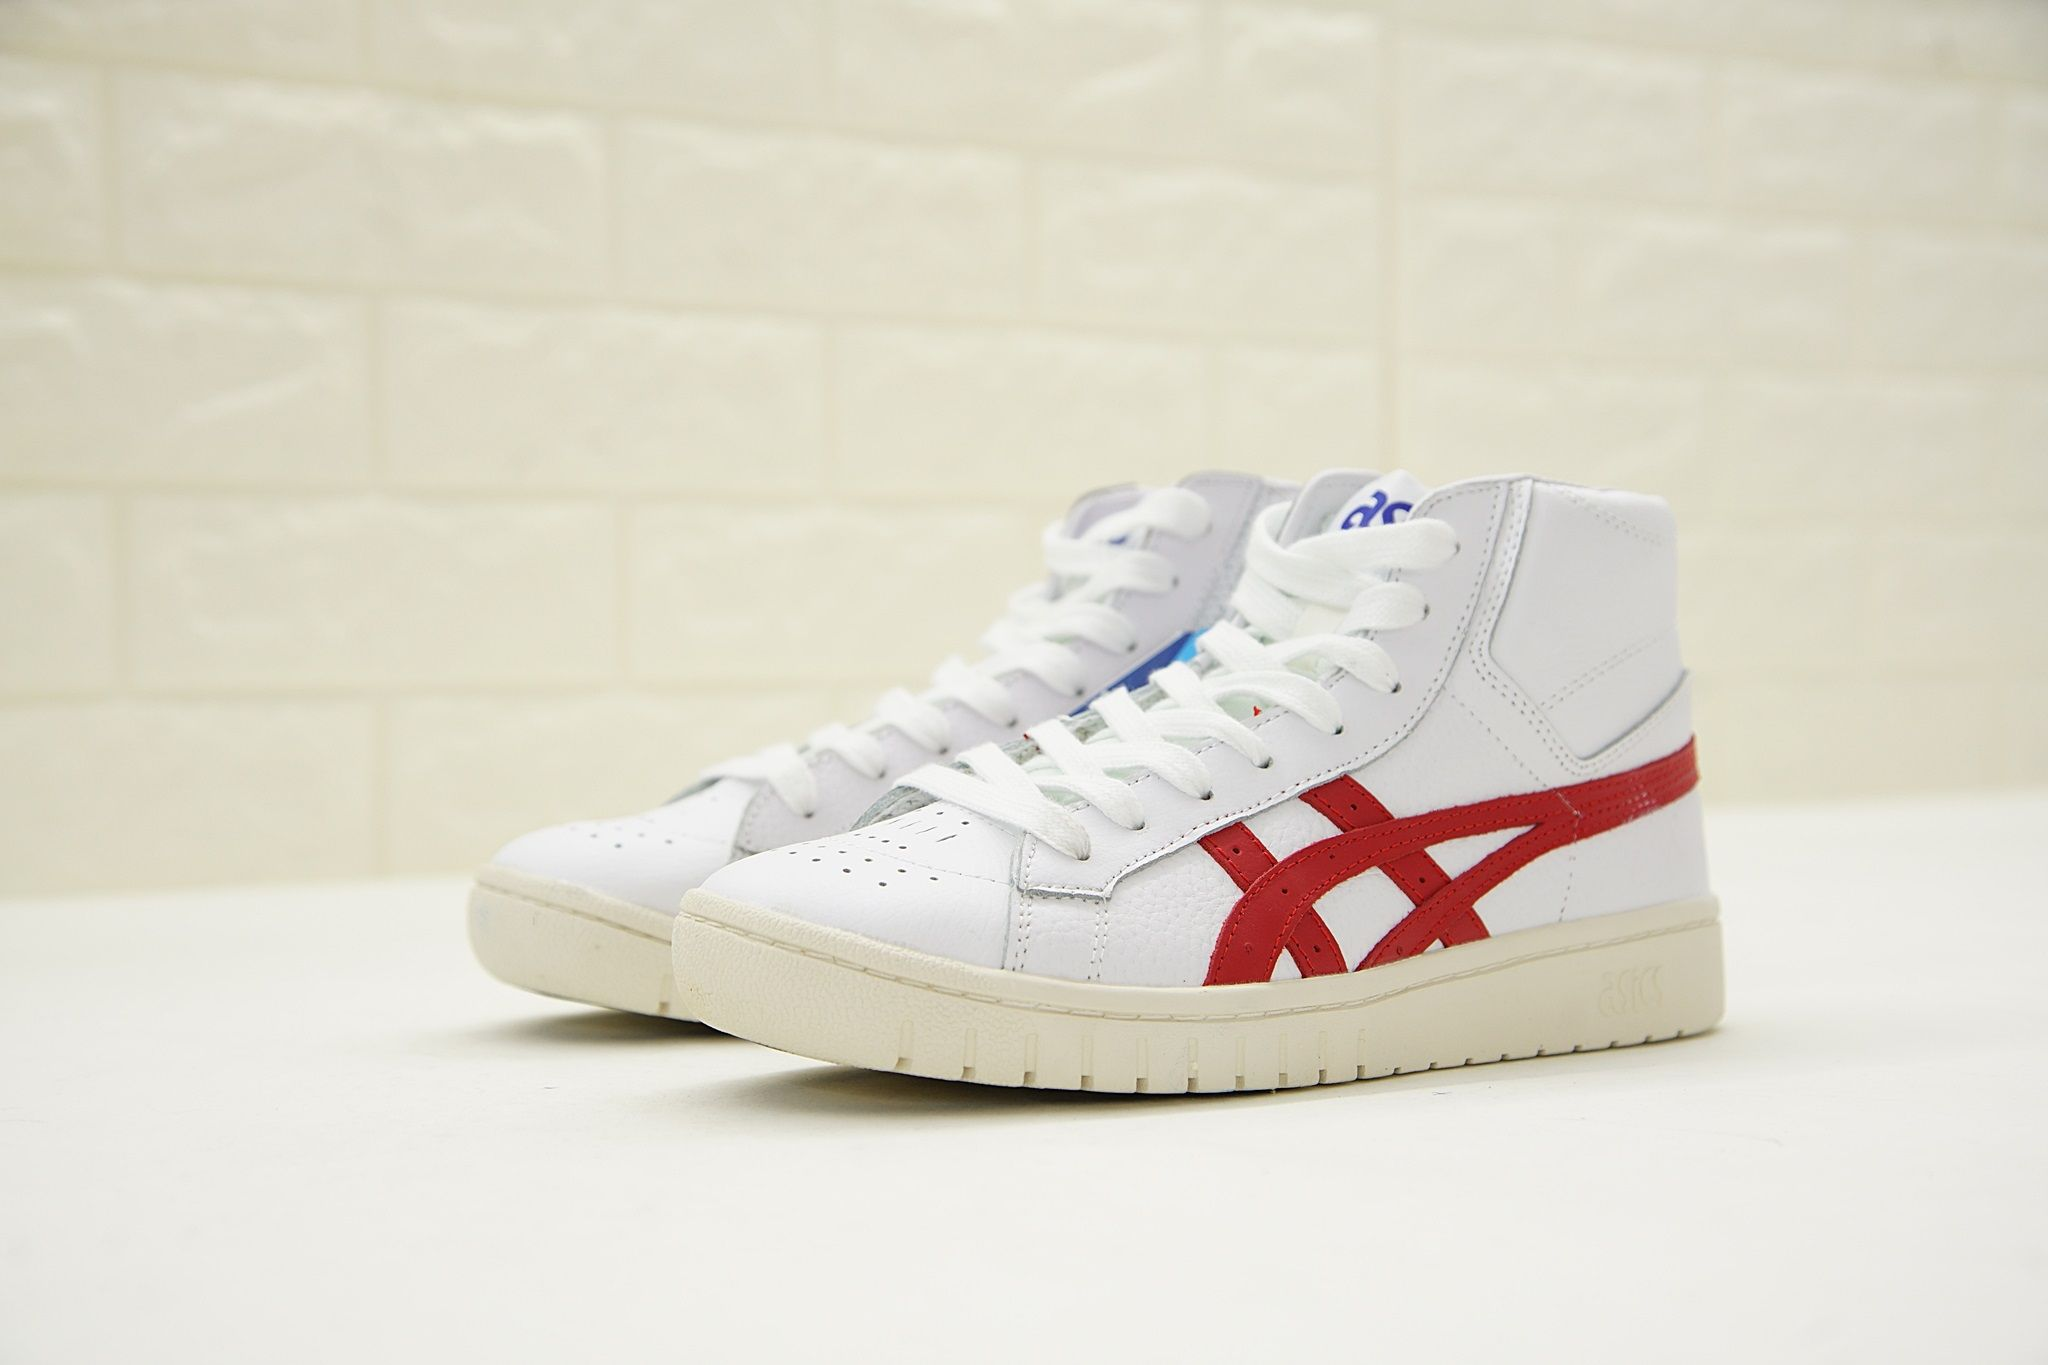 ASICS TIGER GEL PTG MT MID WHITE RED HL7R4 0123 | ASICS